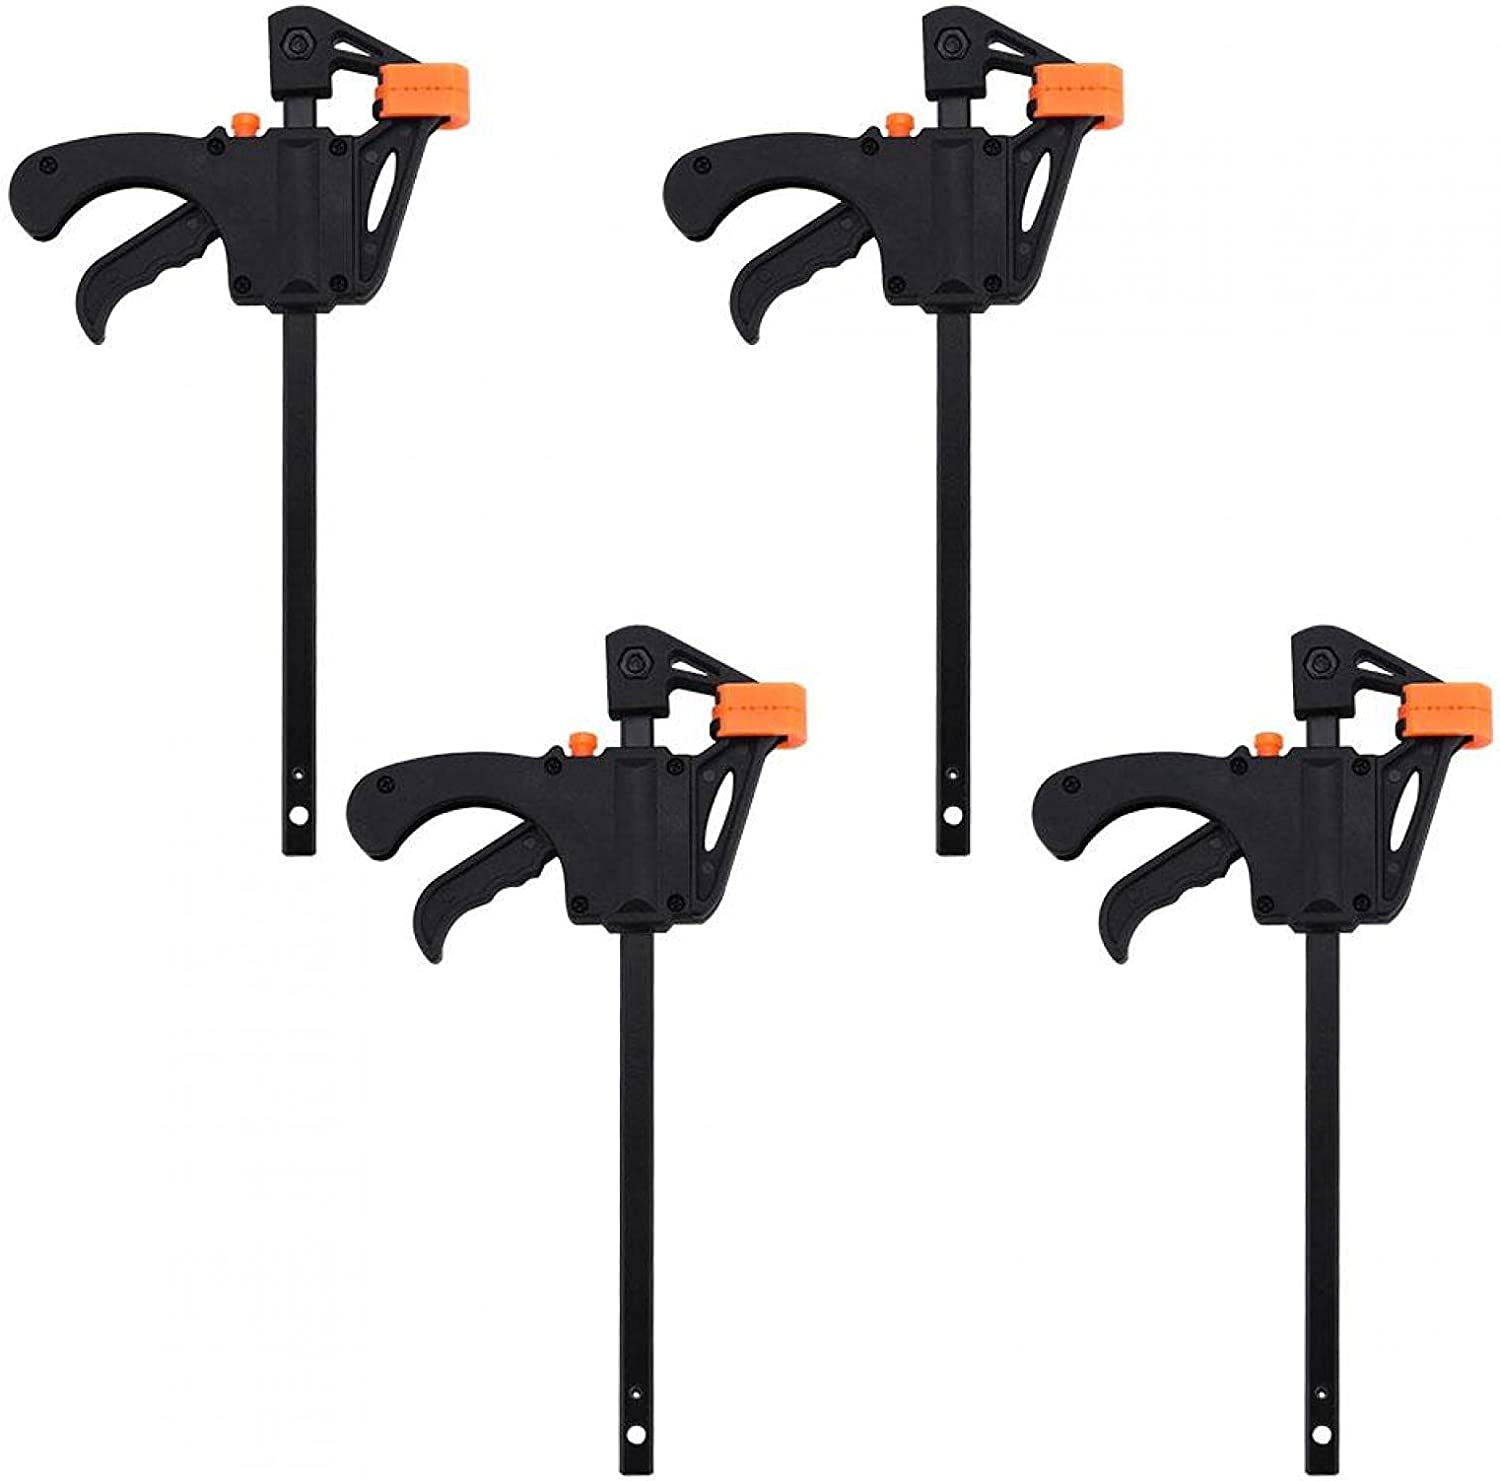 Max 62% OFF Ratchet Bar Clamp Set Price reduction Comfortable To Hold Easy Plastic Use a